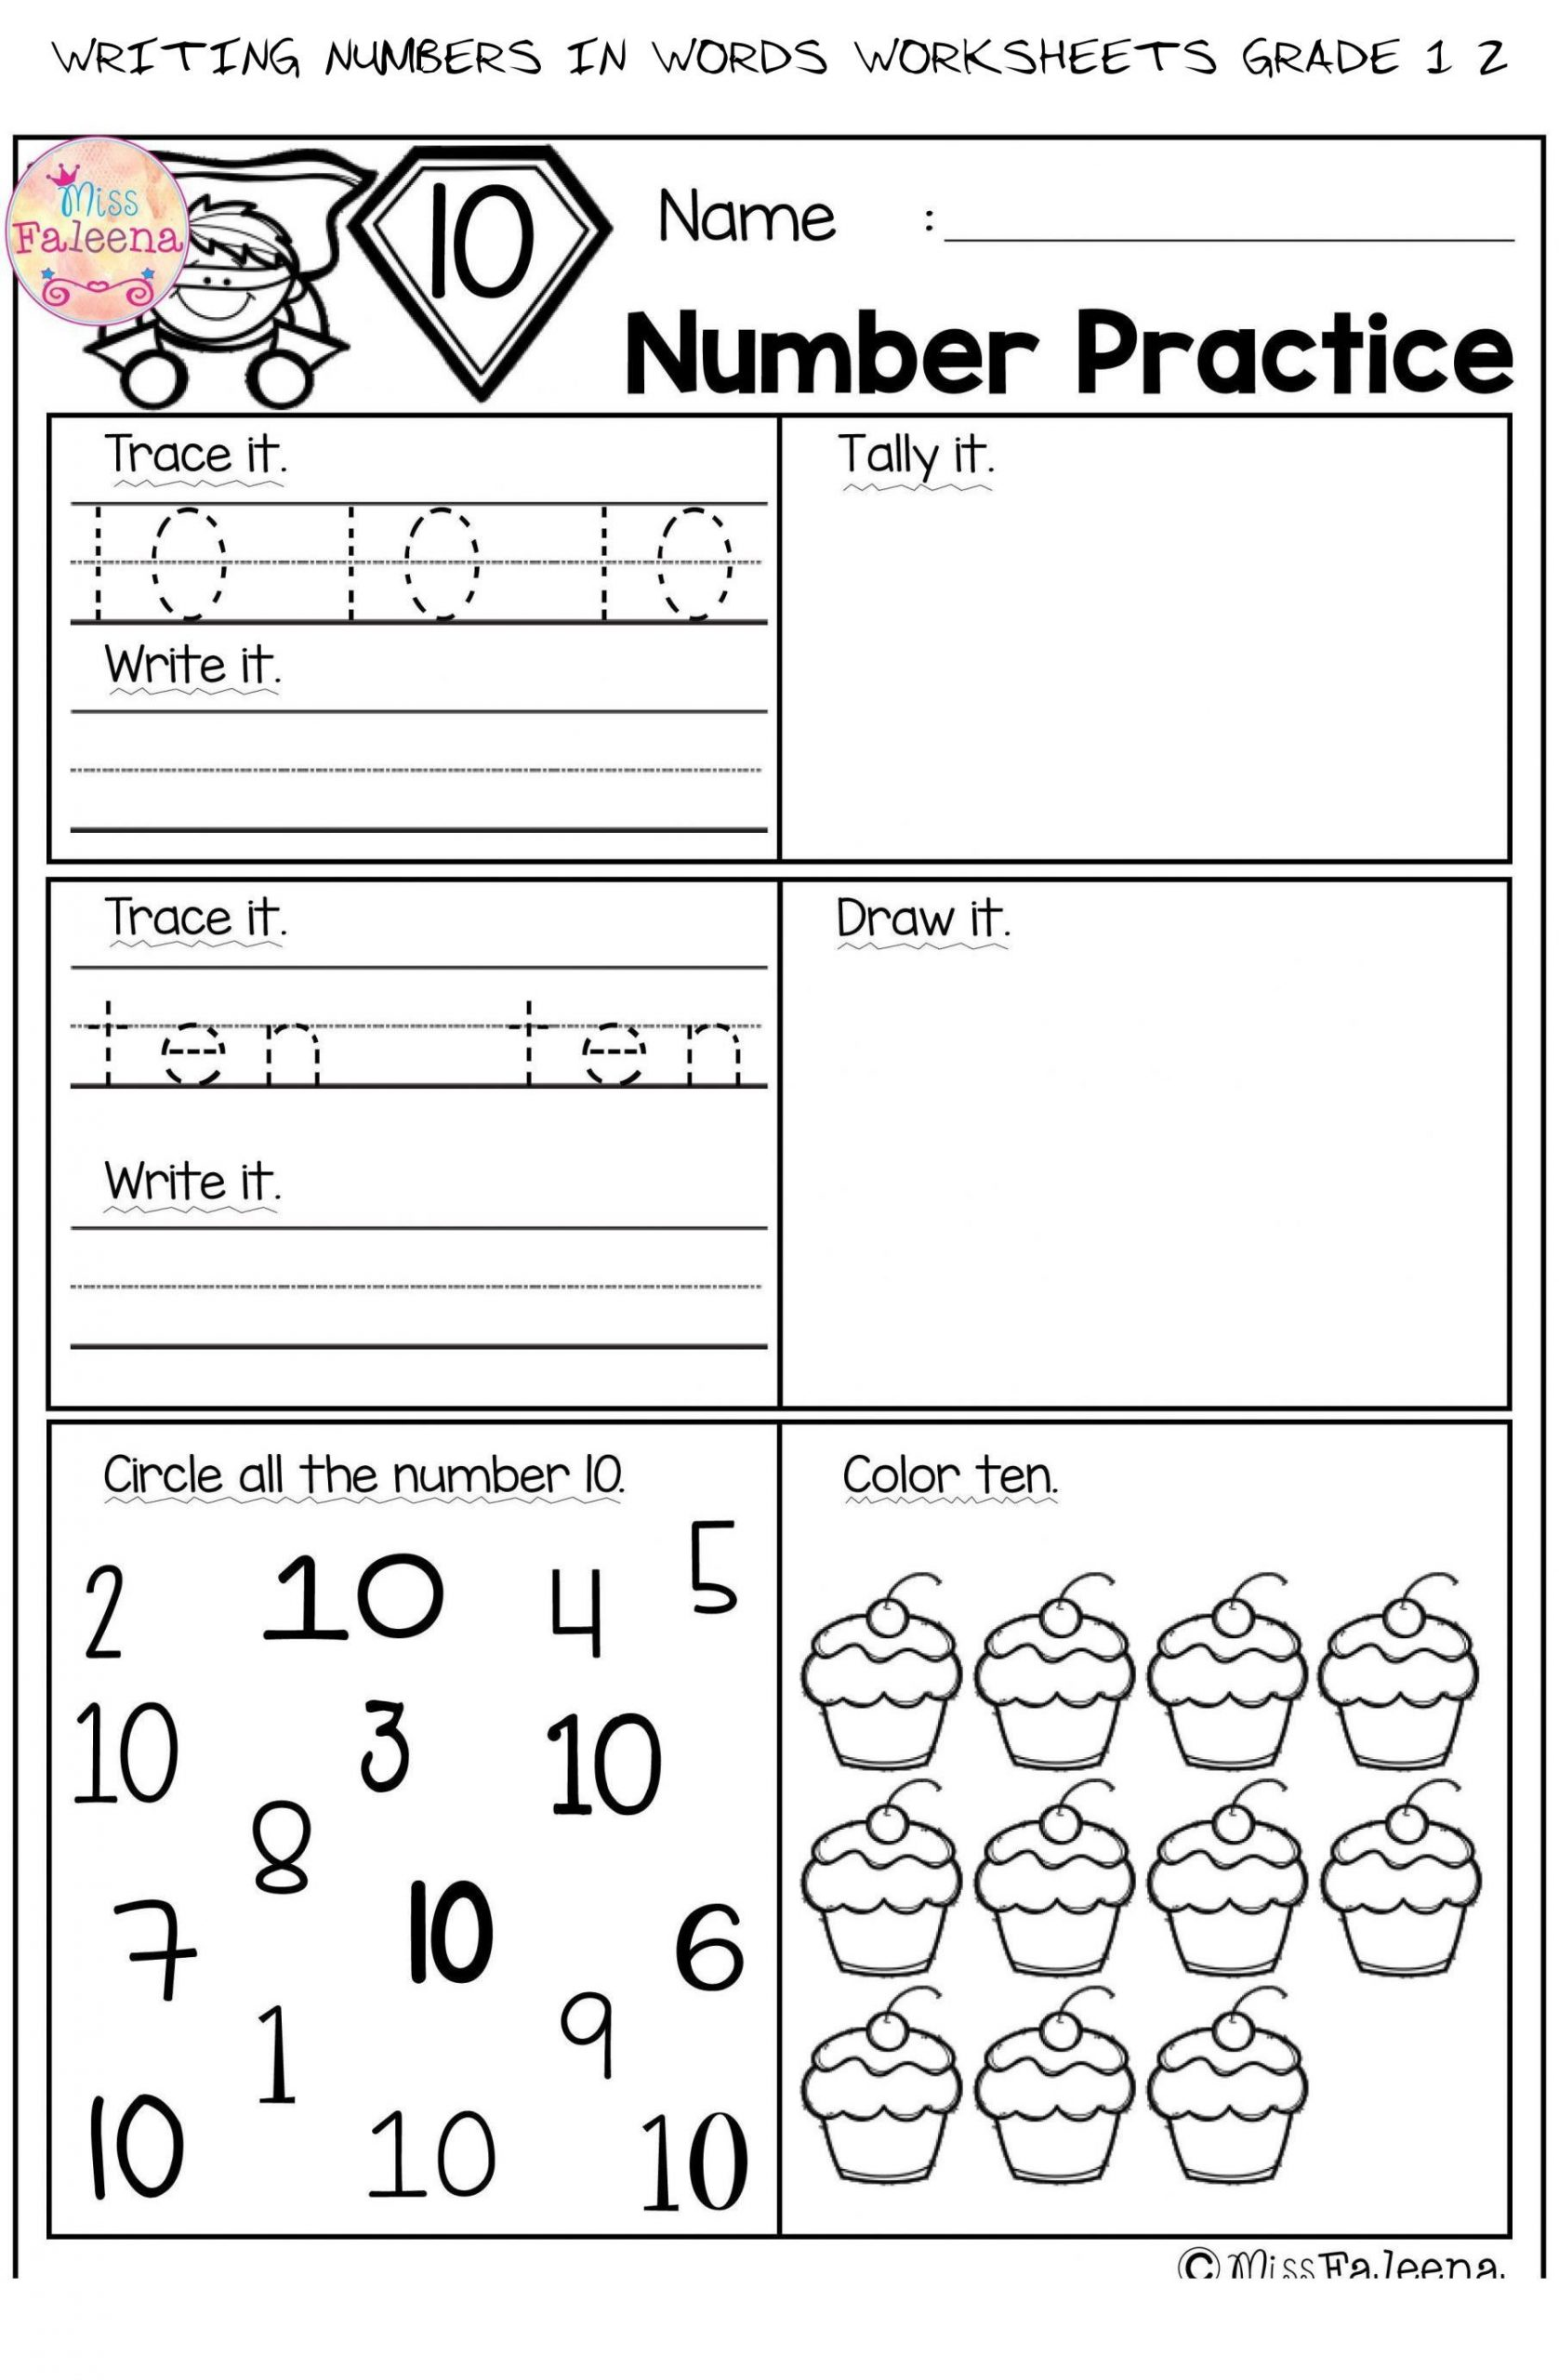 Writing Number Worksheets 1 20 Writing Numbers In Words Worksheets Grade 1 2 2 Writing